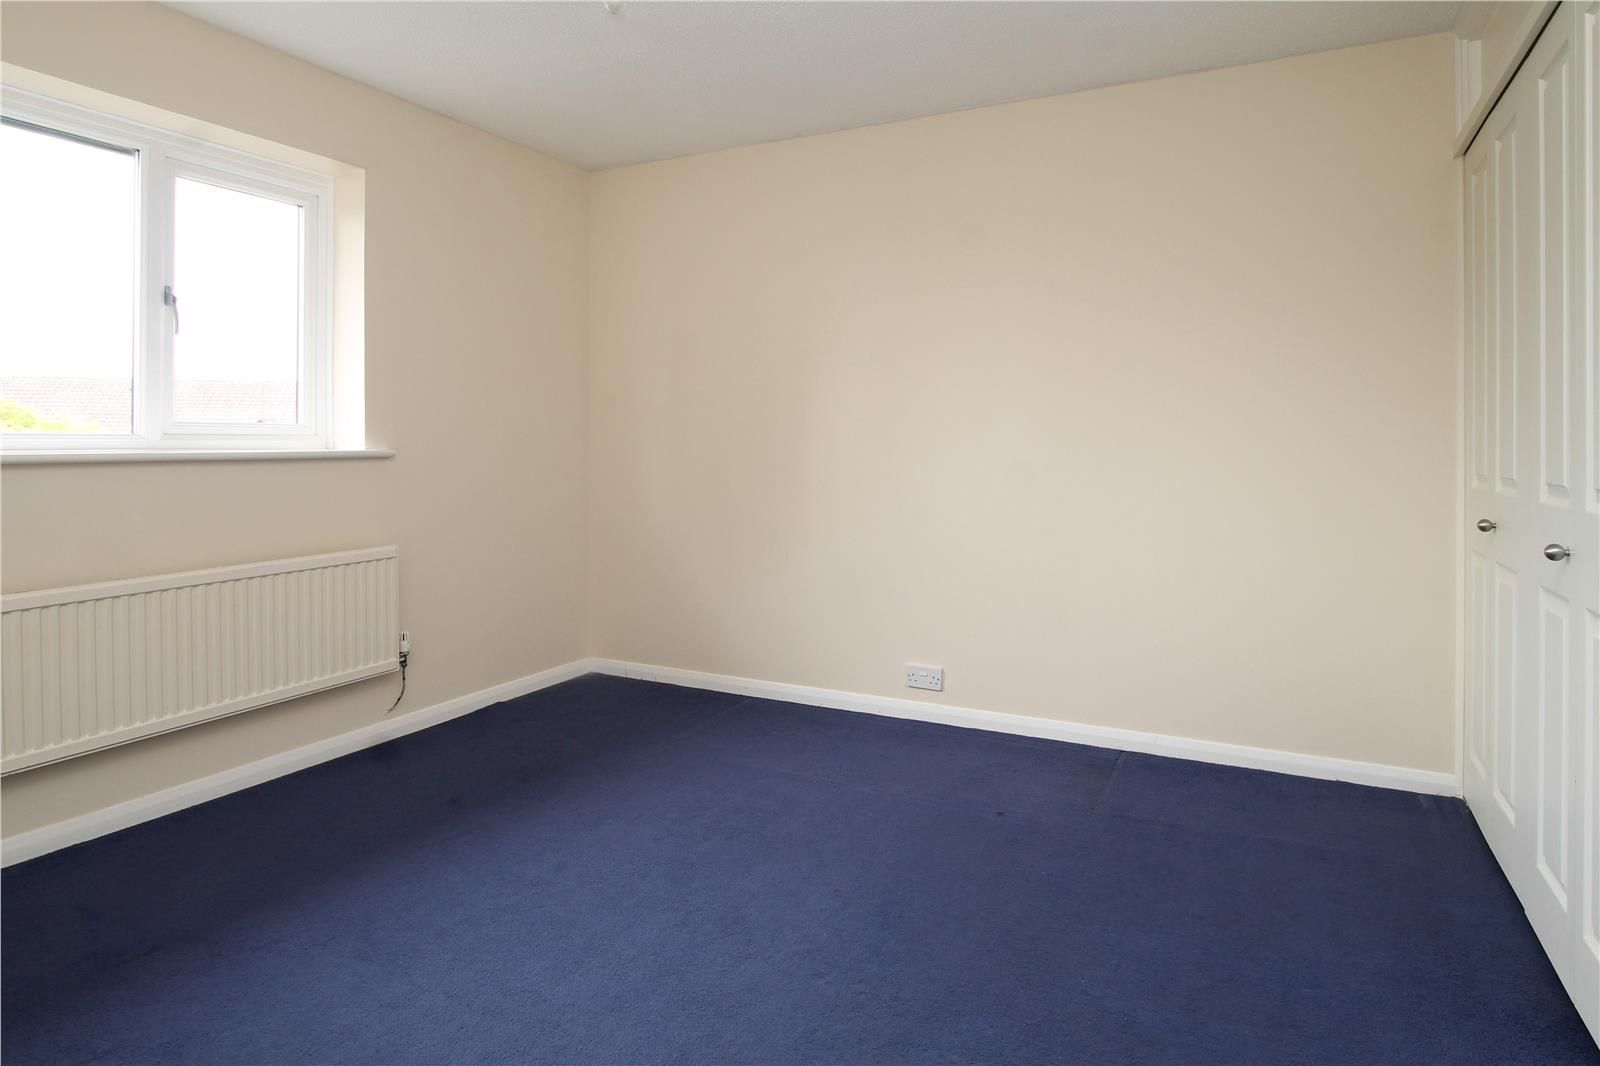 2 Bedroom House For Sale In Guildford